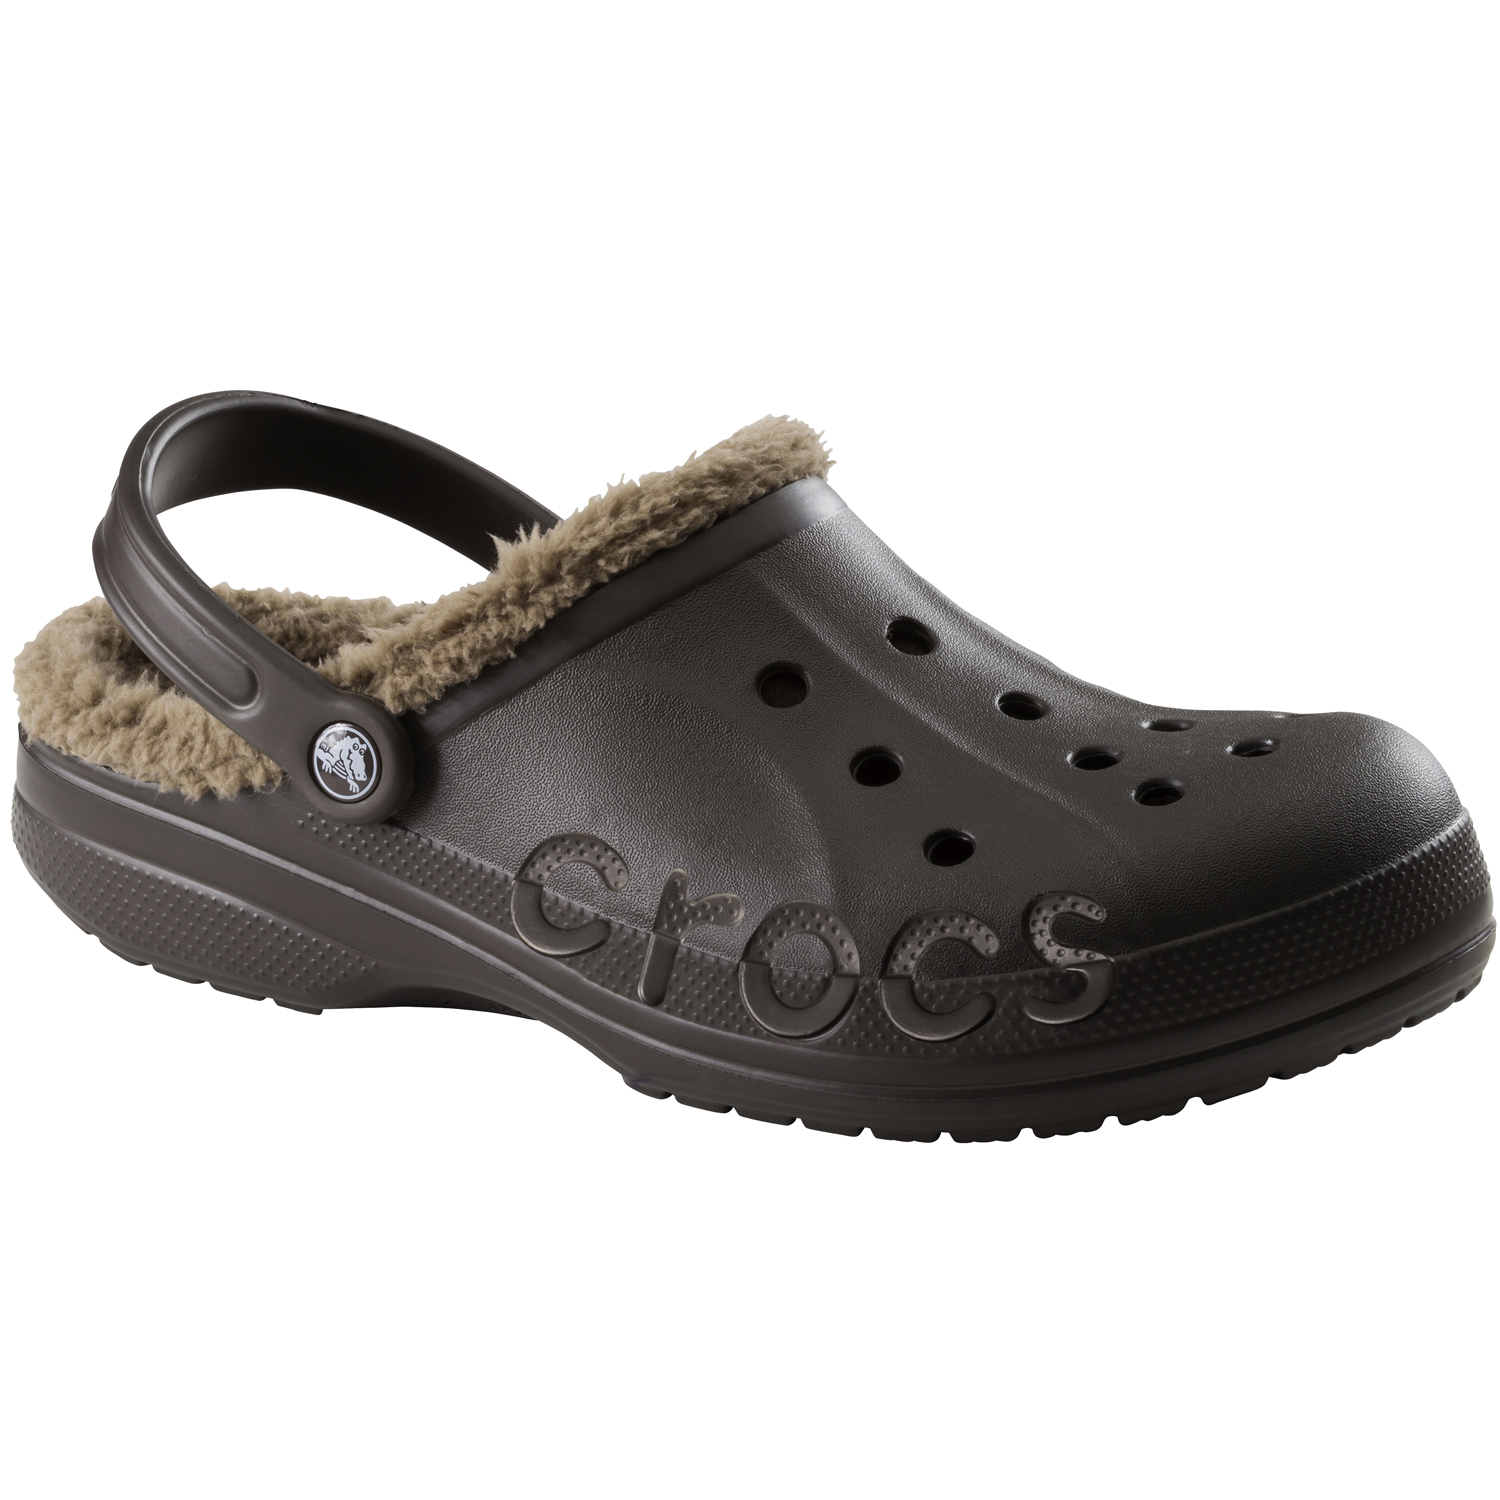 crocs baya lined damen und herren schuhe clogs ebay. Black Bedroom Furniture Sets. Home Design Ideas